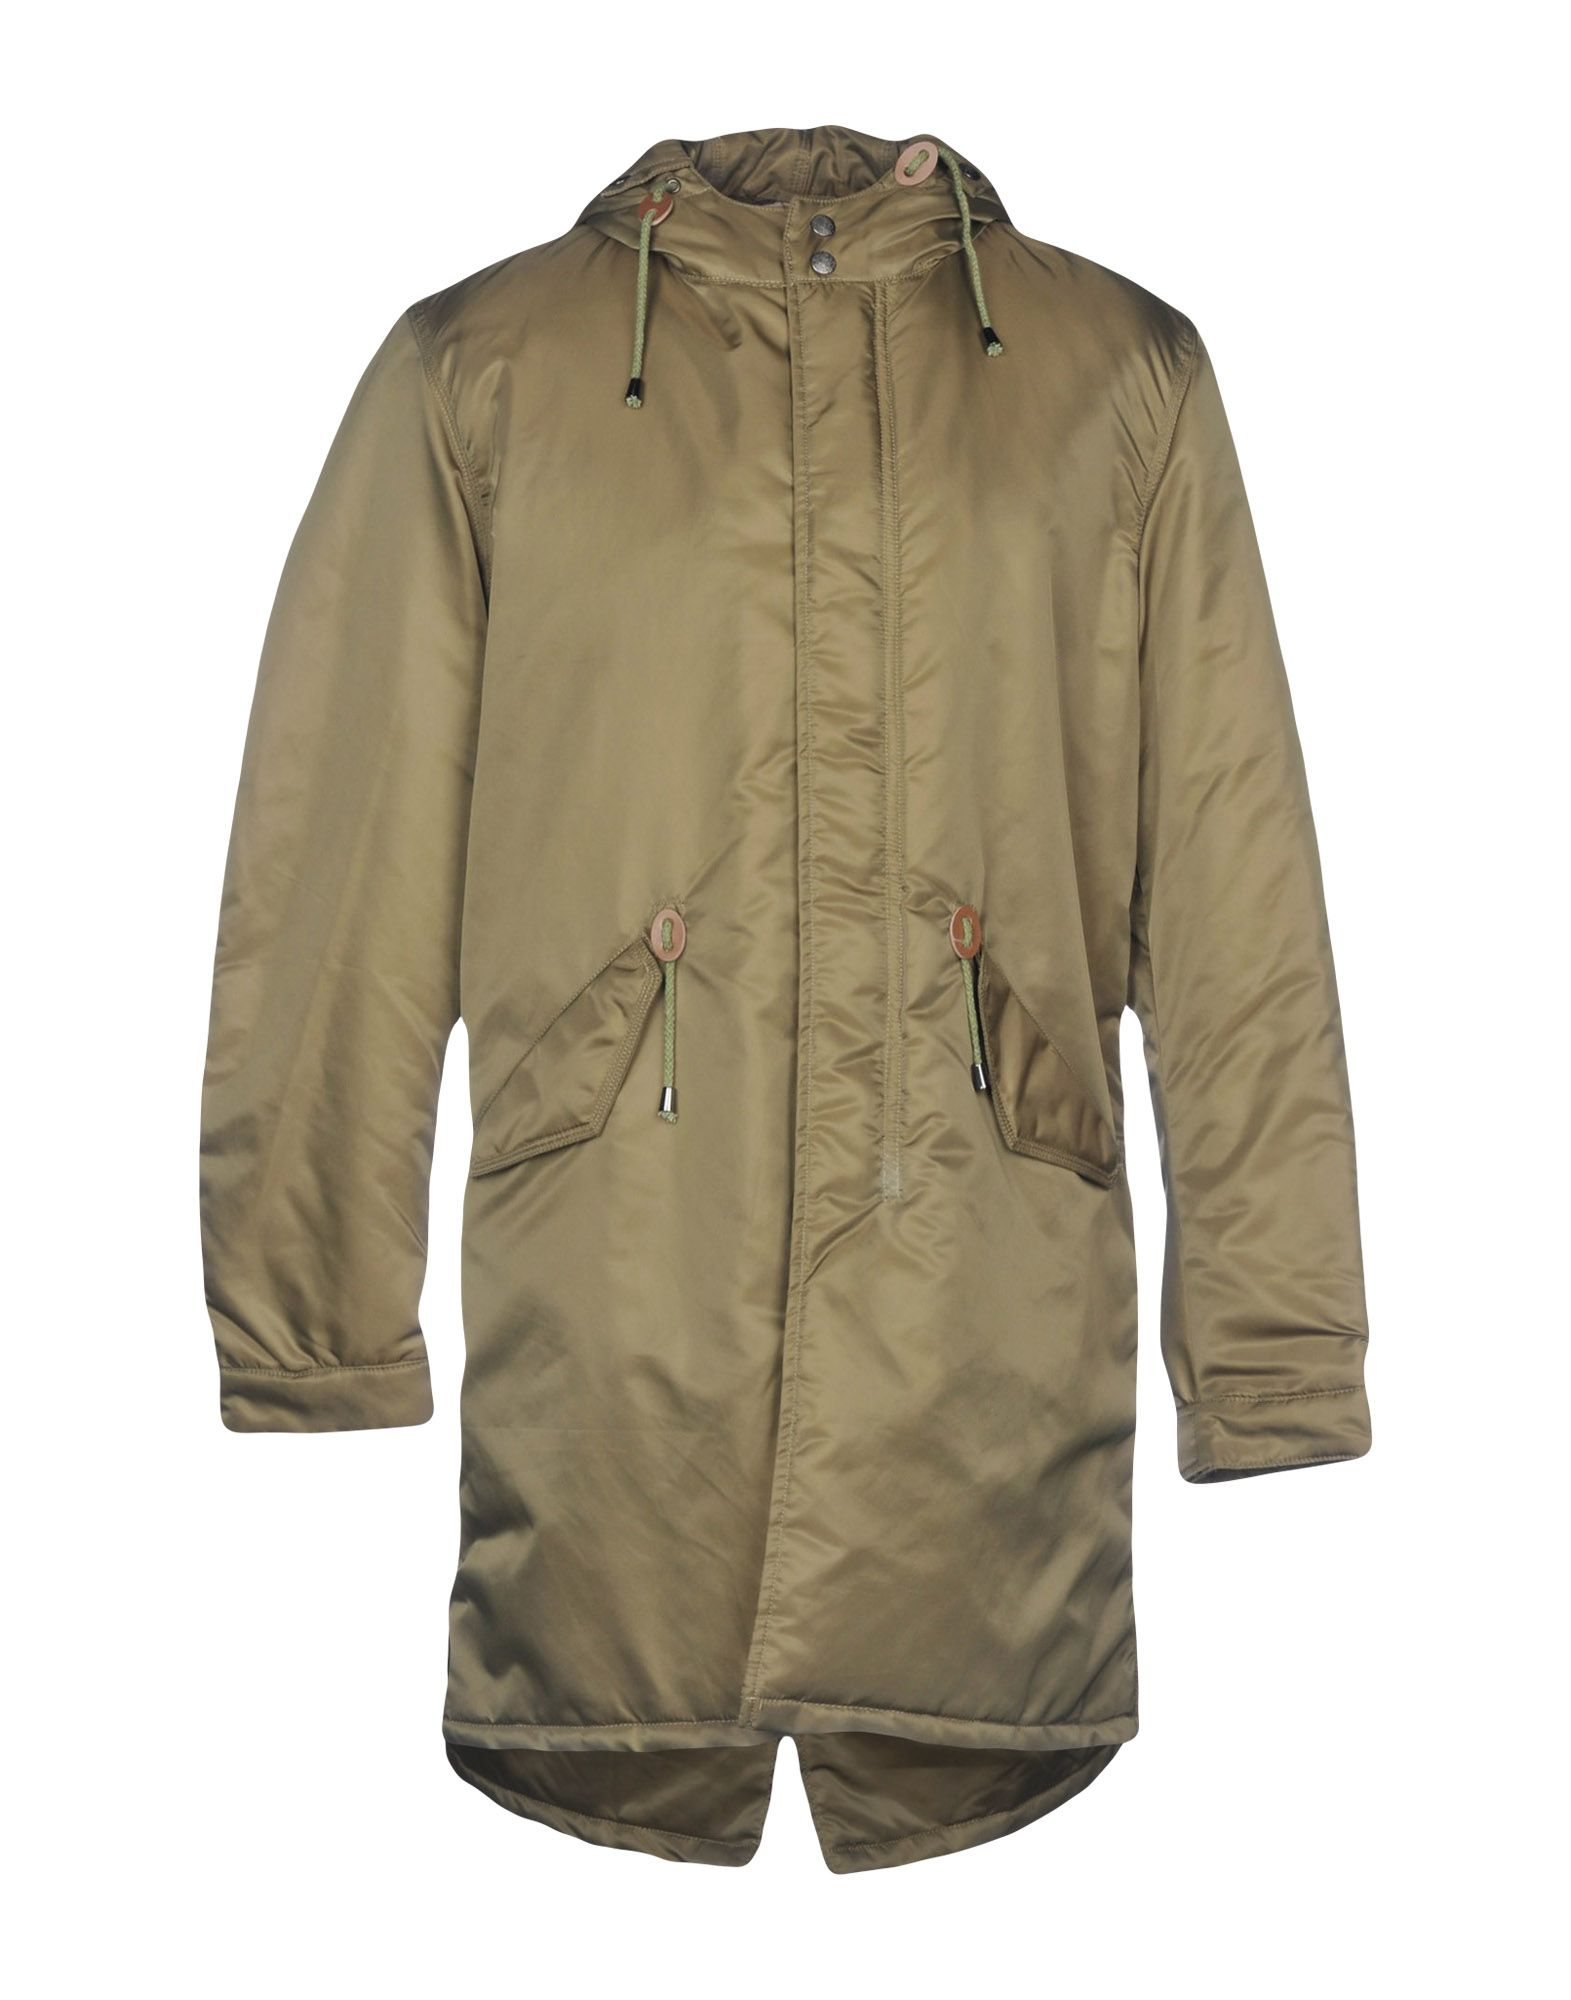 CYCLE Jacket in Military Green